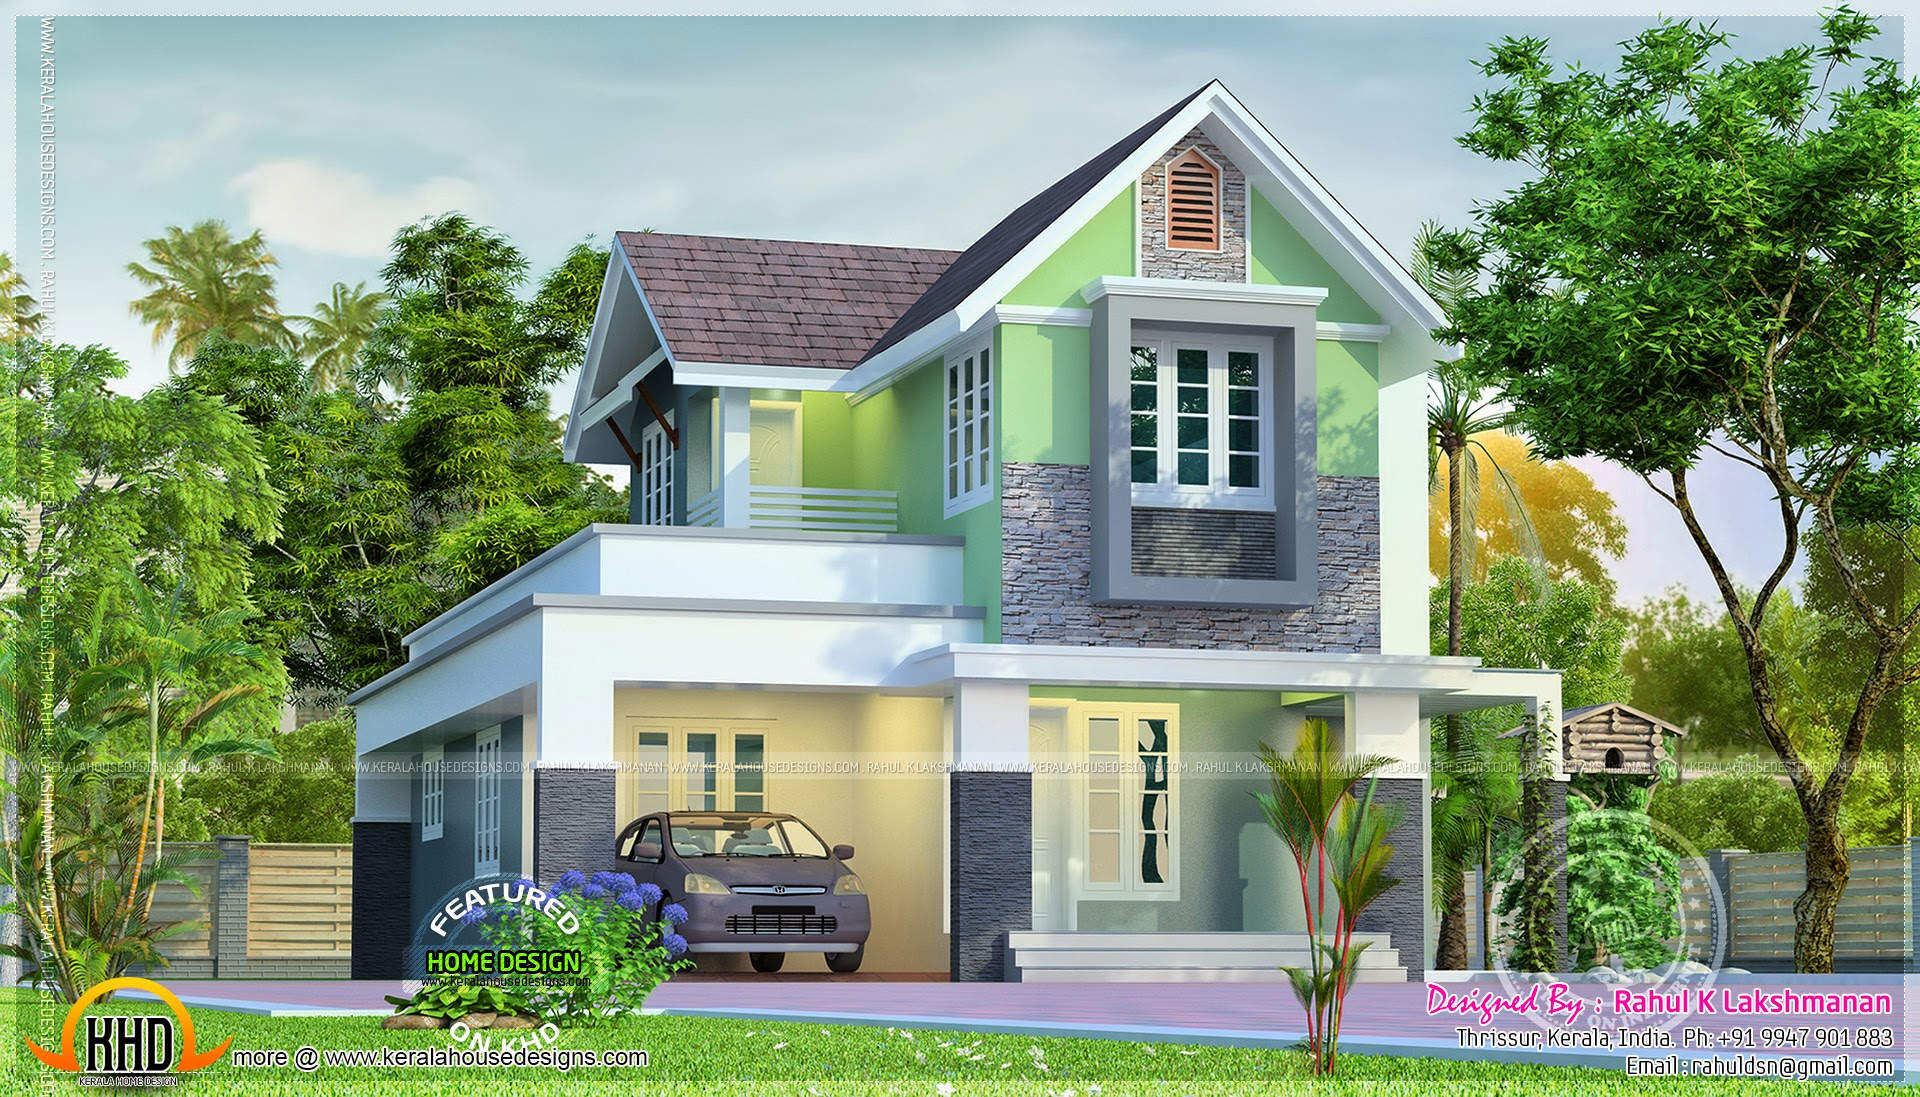 Cute little house plan kerala home design and floor plans for Cute house plans